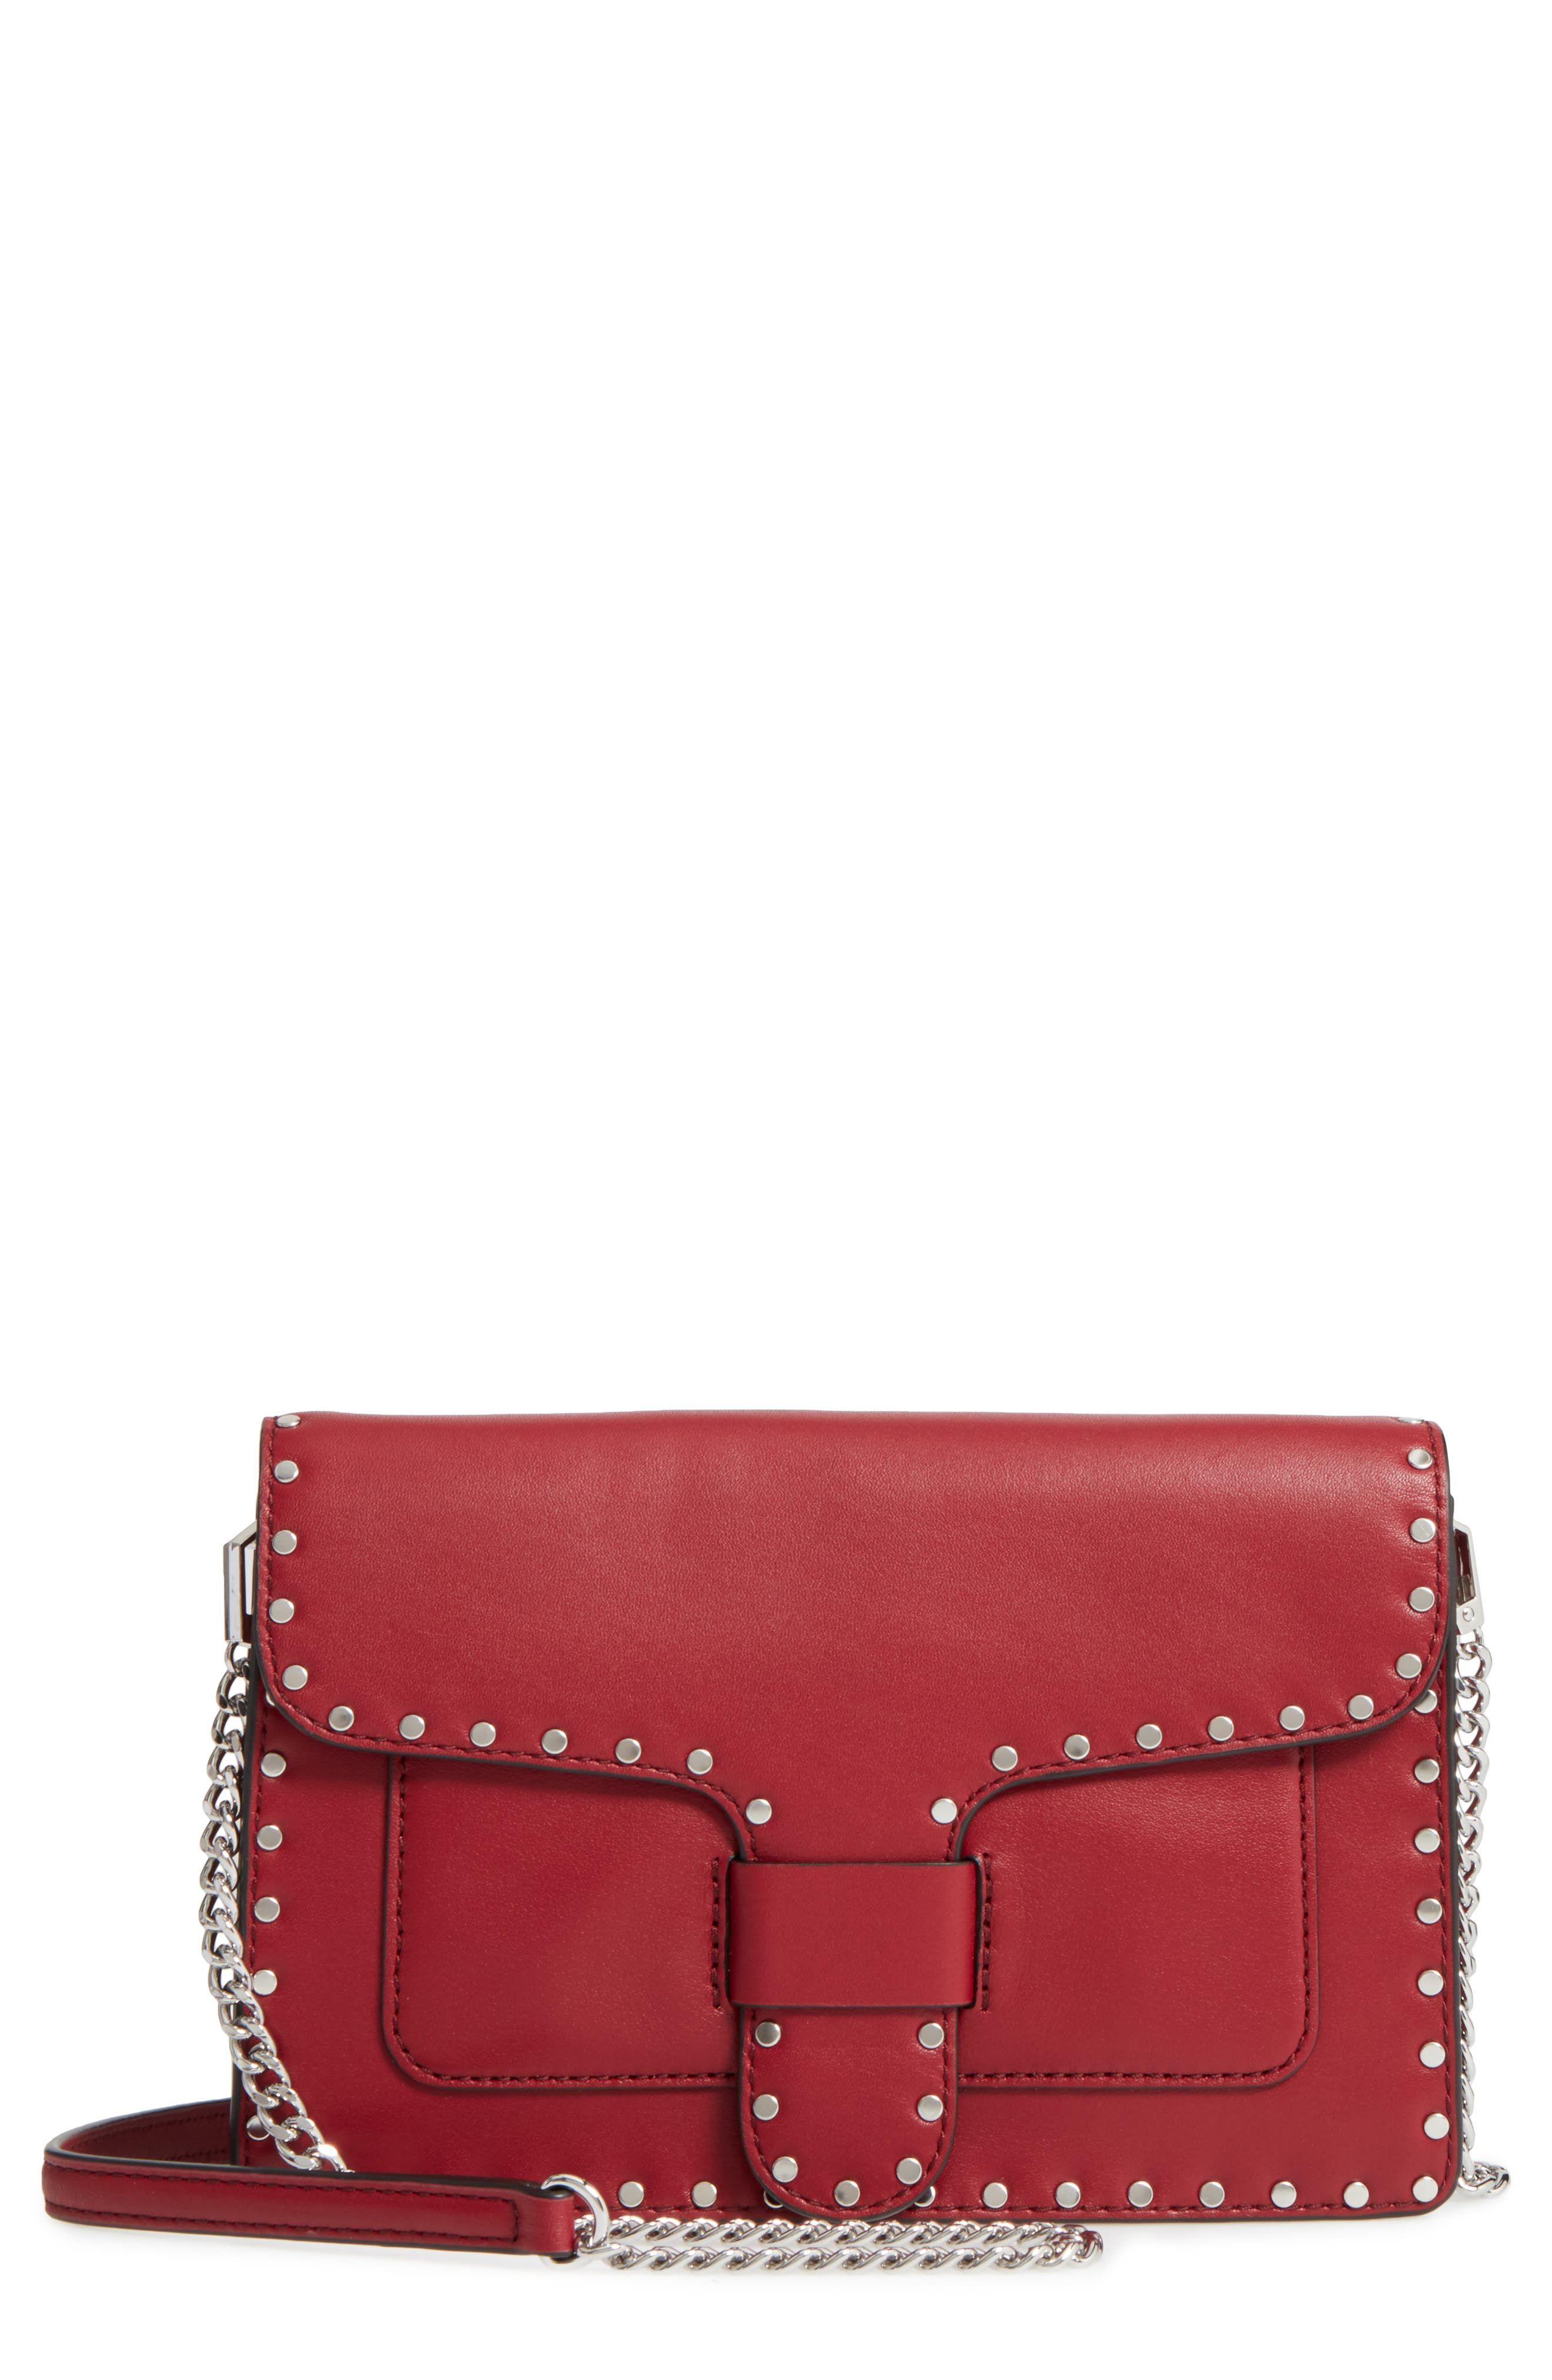 Alternate Image 1 Selected - Rebecca Minkoff Medium Midnighter Leather Crossbody Bag